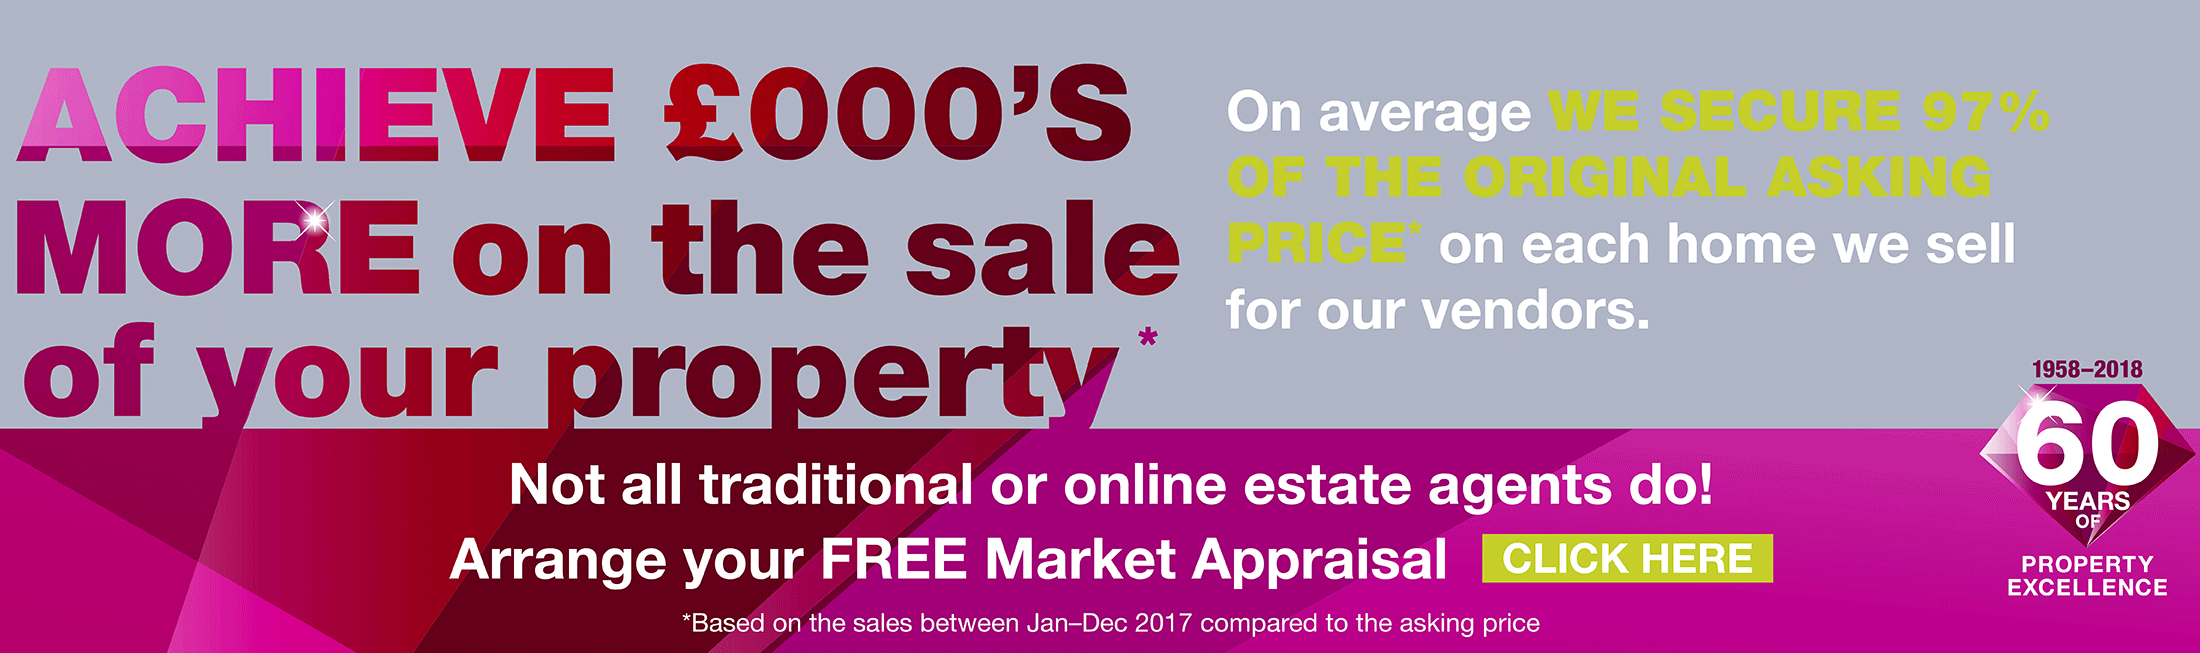 Achieve £000's more on the sale of your property